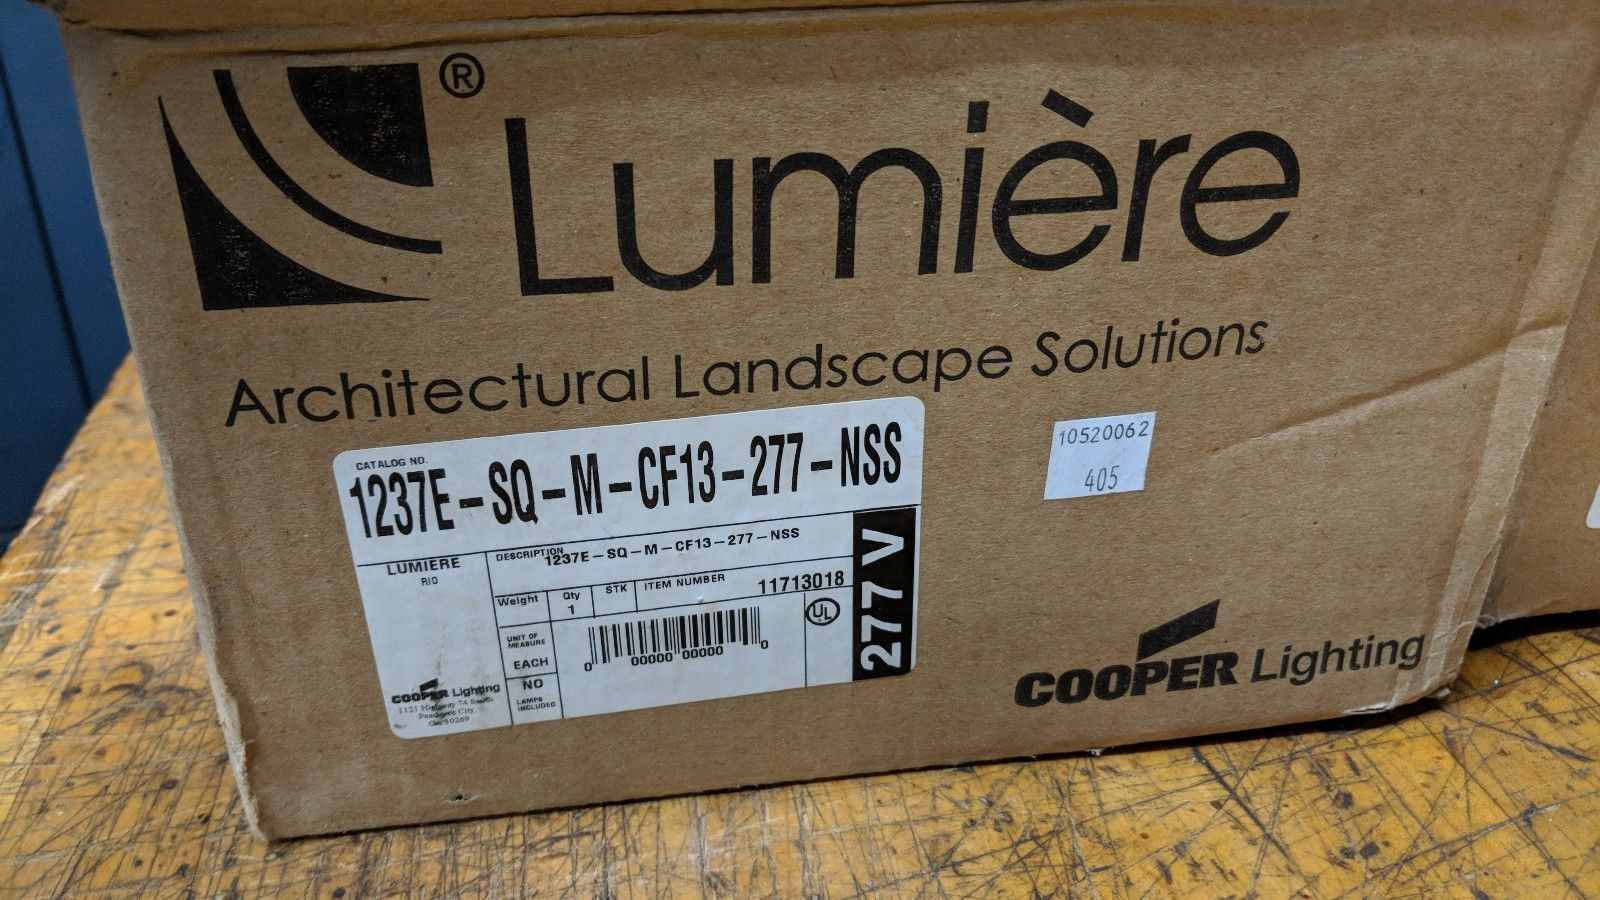 """cooper luimiere 7"""" stainless steel CF step light 1237e-sq-m-cf13-277-nss"""